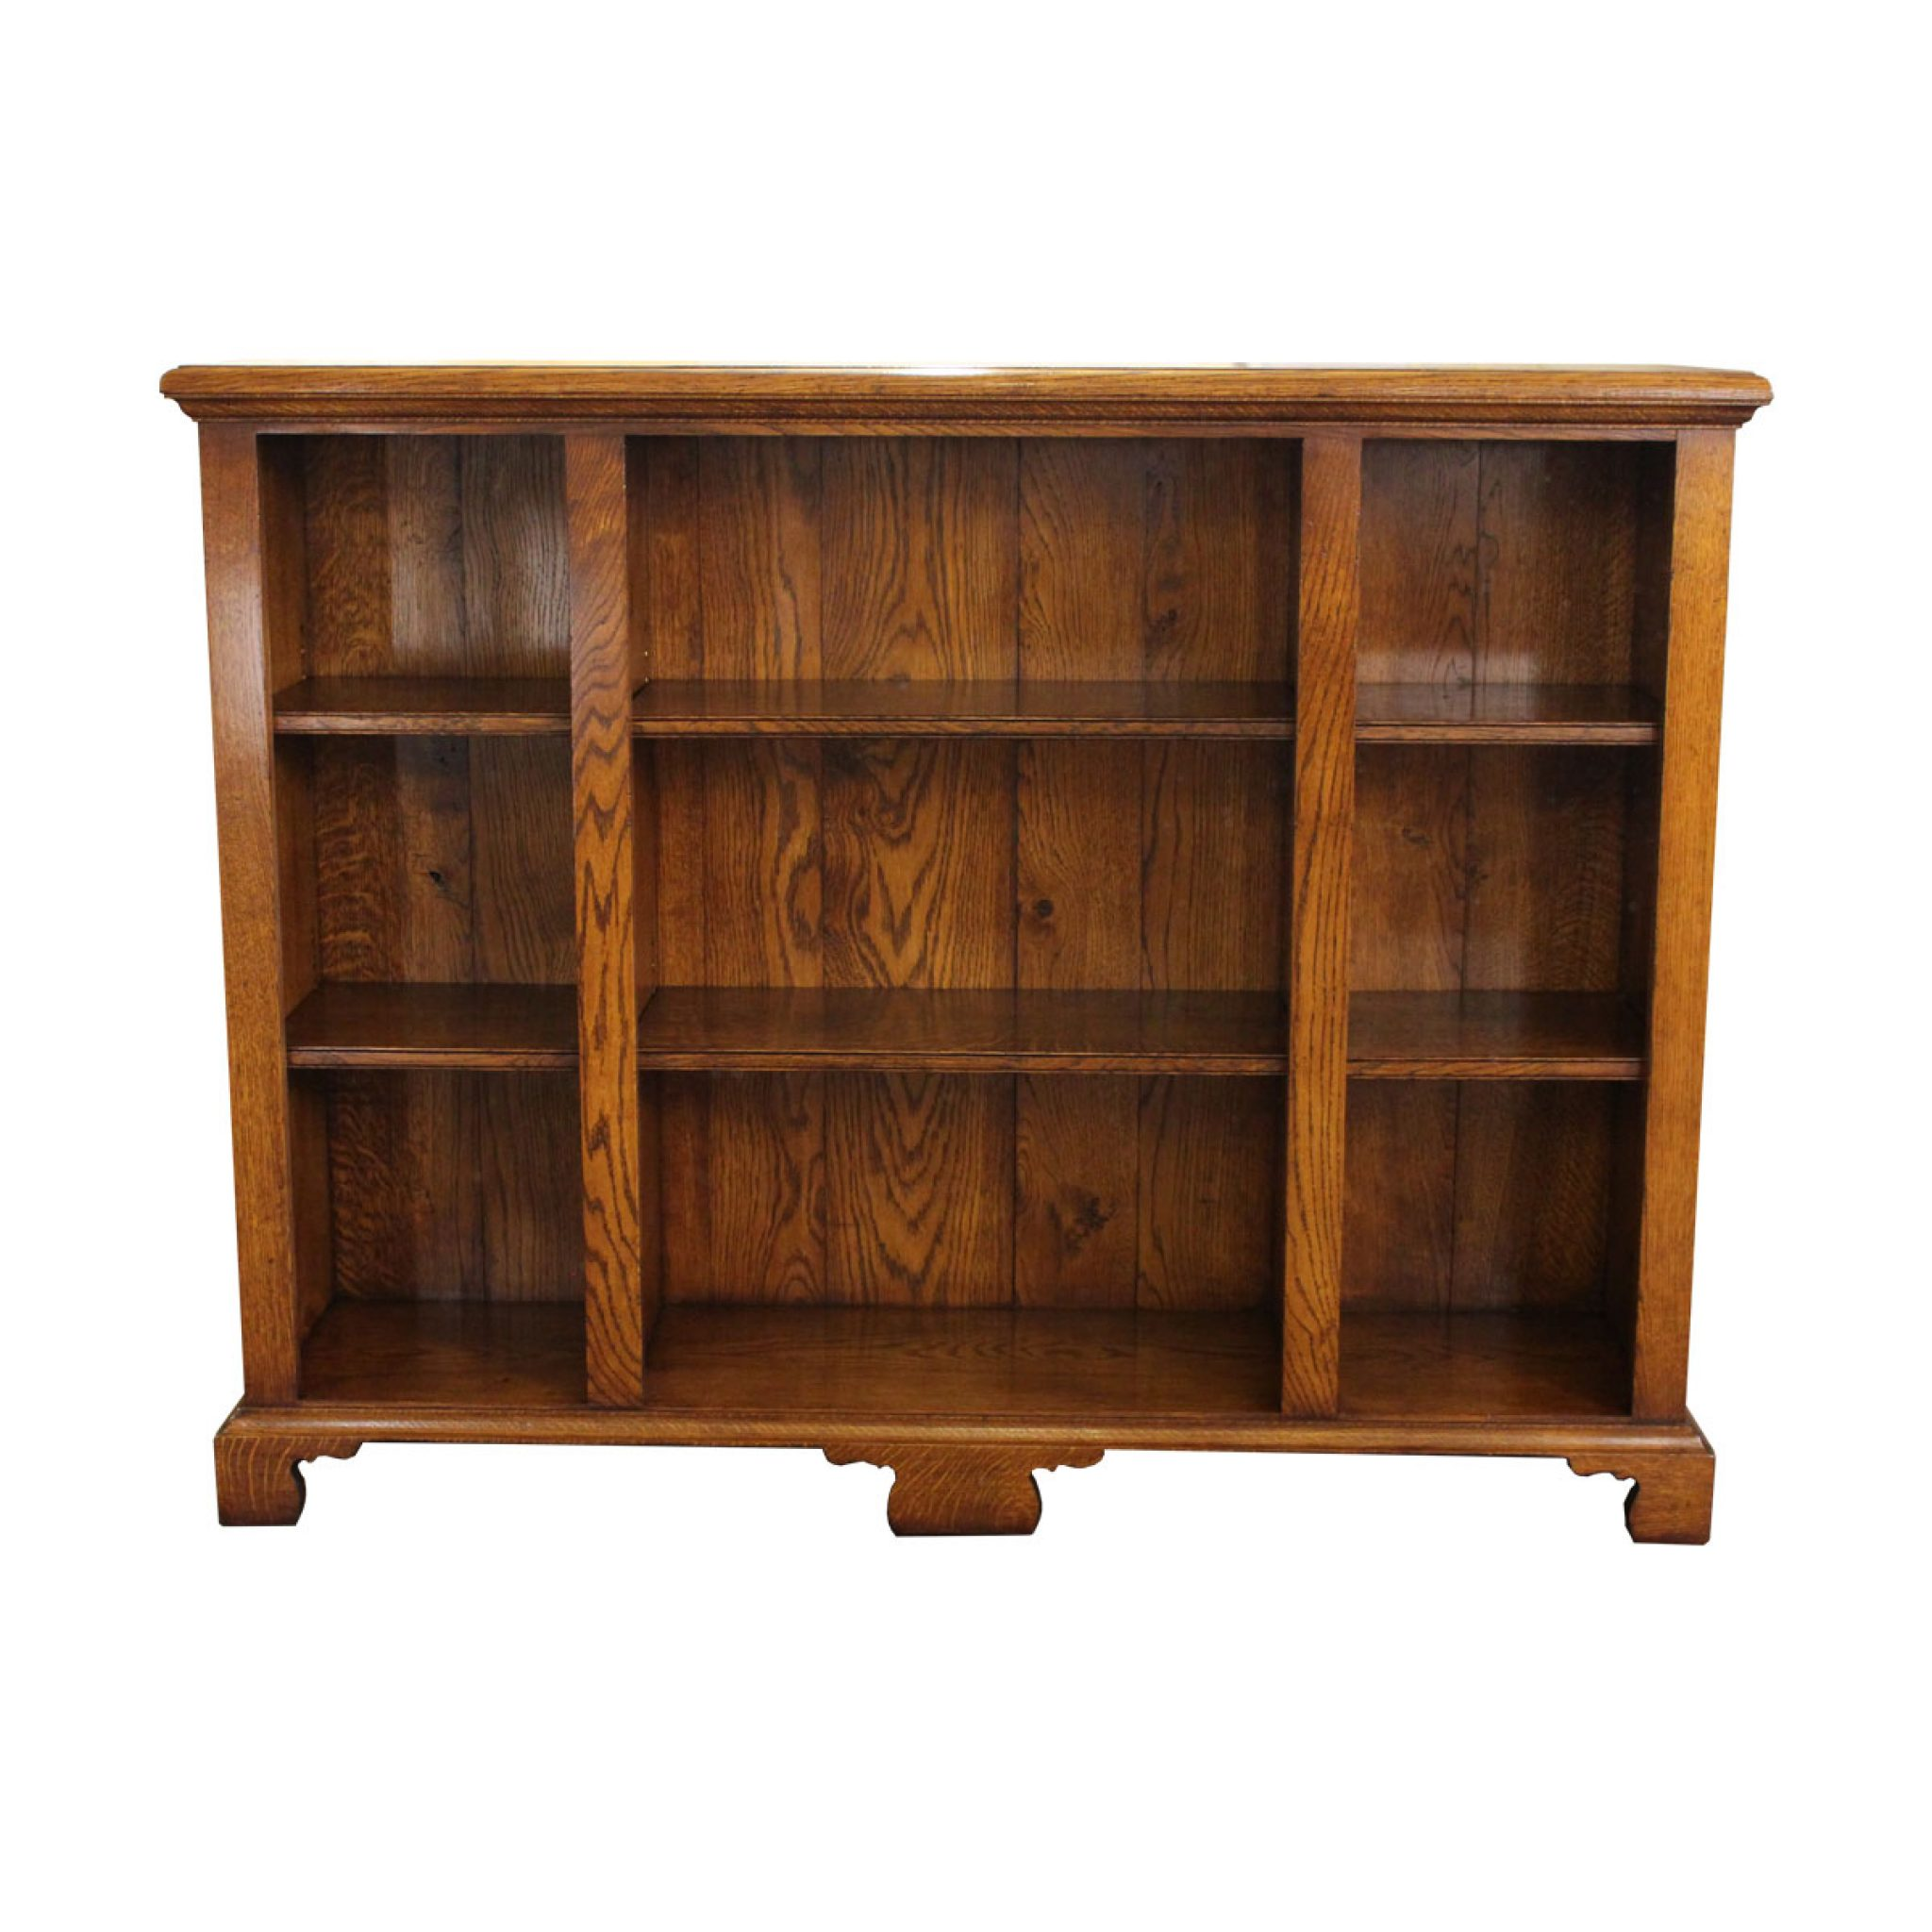 Handmade Oak Furniture Selkirk